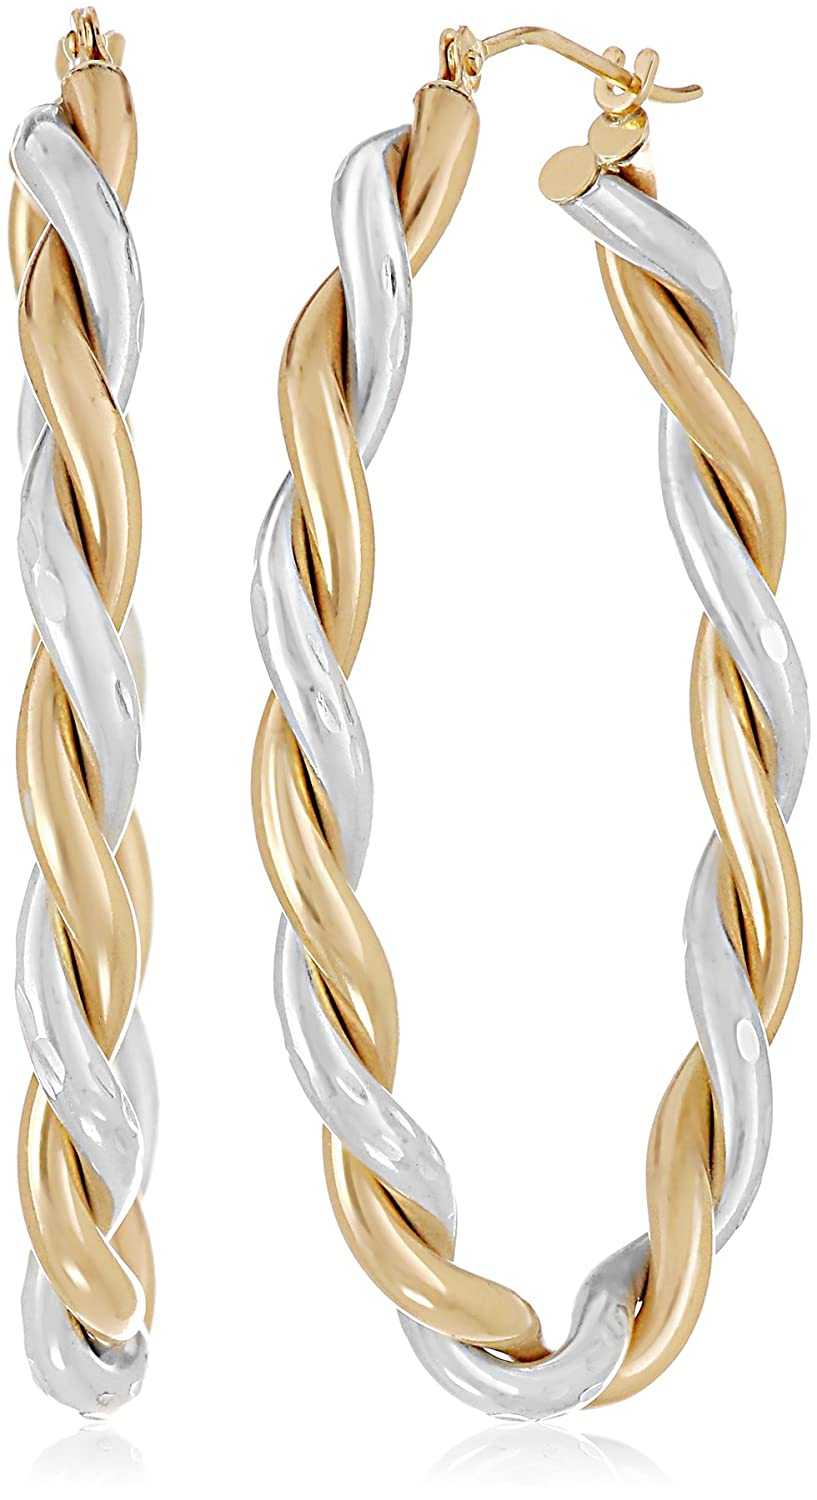 Amazon.com: 14k Yellow Gold-Bonded Sterling Silver Twisted Hoop ...